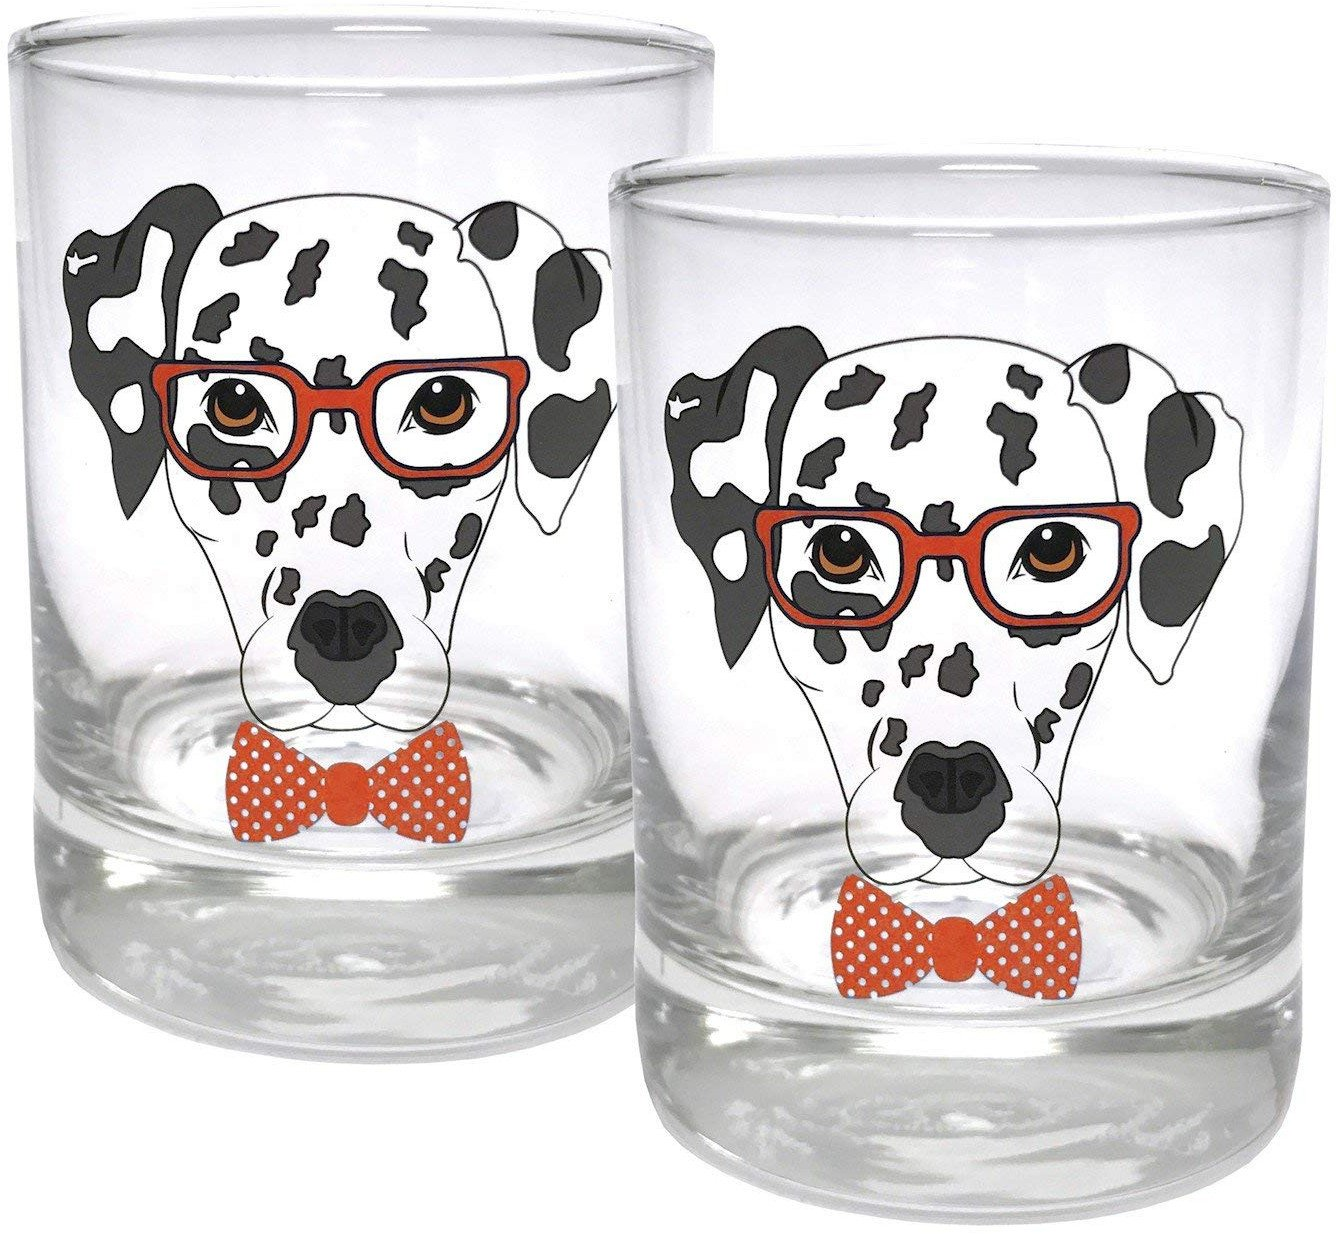 Circleware Dalmatian Dogs Double Old Fashioned Whiskey Glass, Set of 2, Kitchen Drinking Glasses Glassware for Water, Juice, Beer and Best Bar Barrel Liquor Dining Decor Beverage Gifts, 11.25 oz, Red